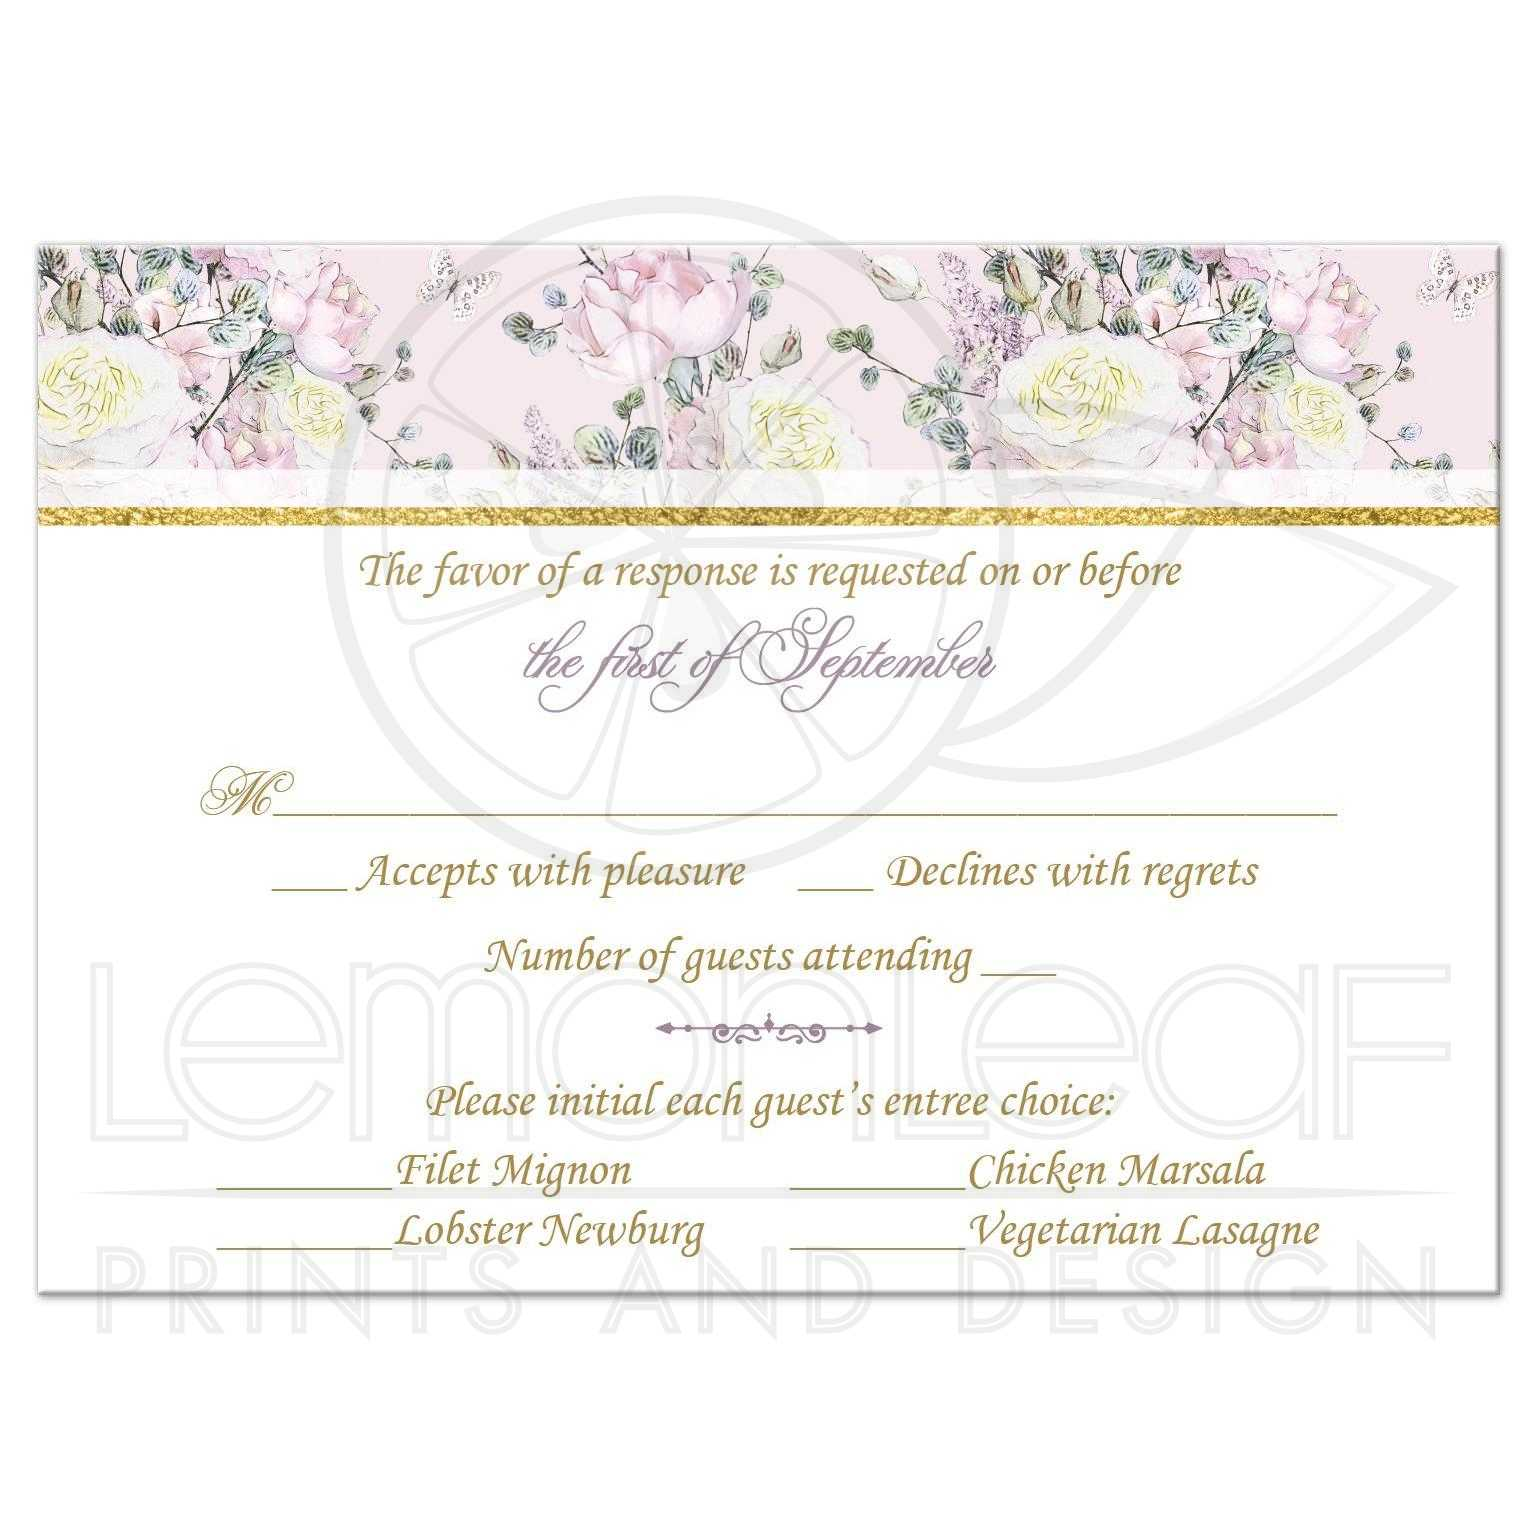 Response Card With Roses In Blush Pink Creamy Yellow And Mauve Pale Purple